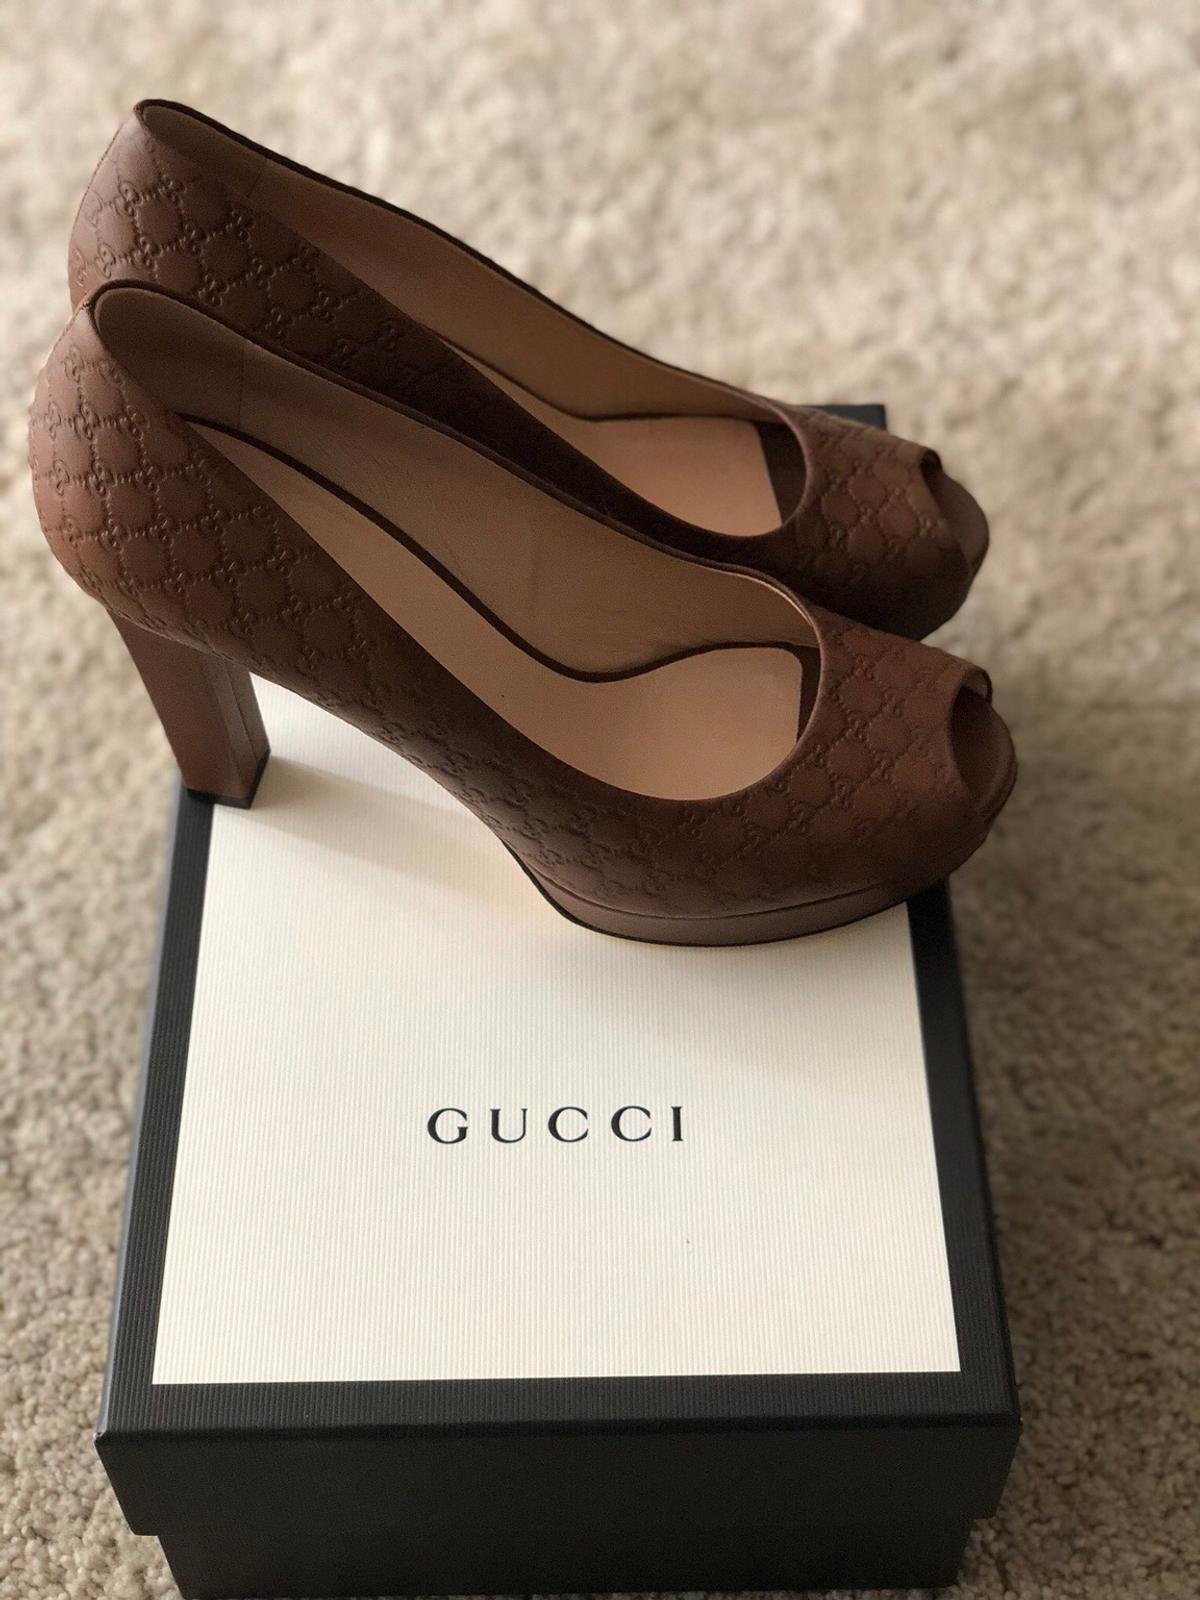 d8b1b41e635 Gucci heels in M3 Salford for £200.00 for sale - Shpock